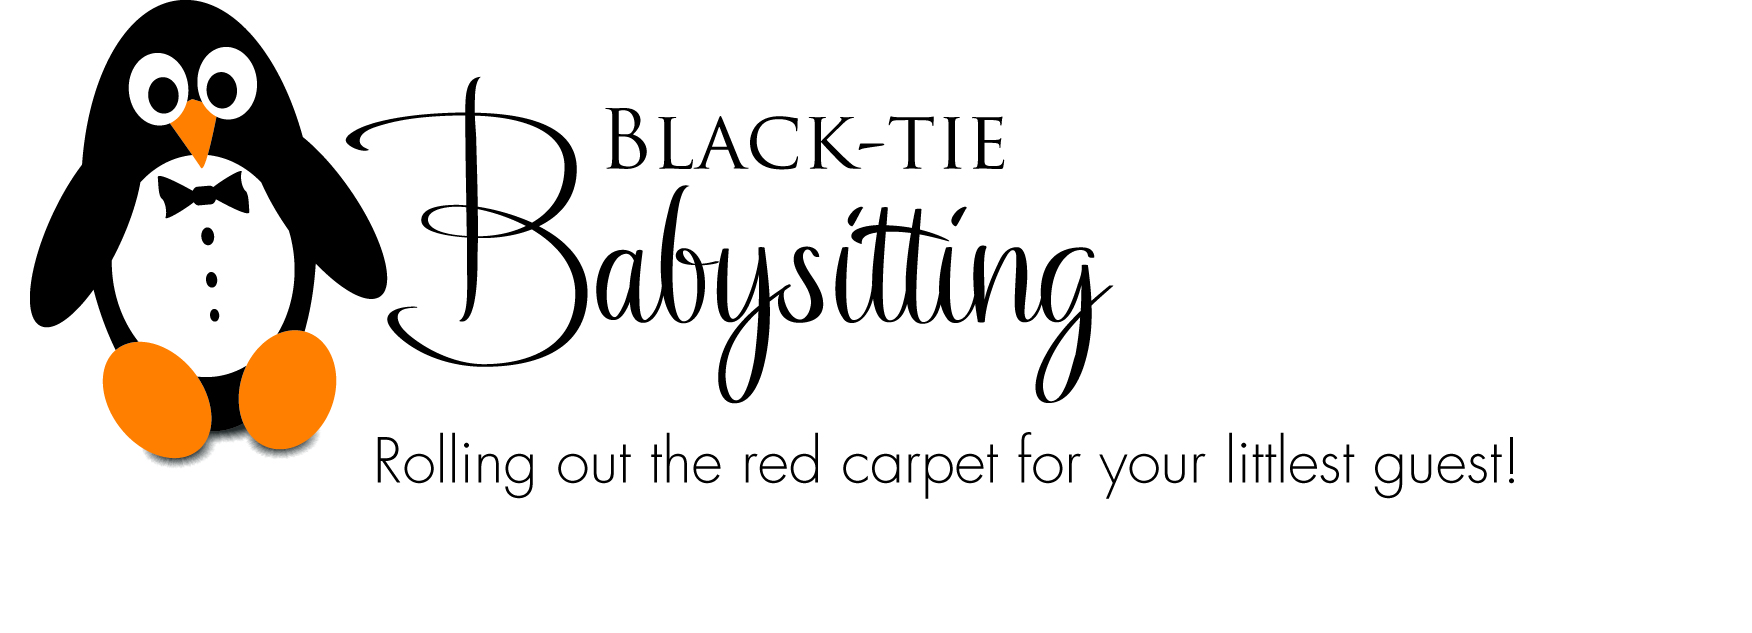 black tie babysitting jobs with remote part time or freelance options